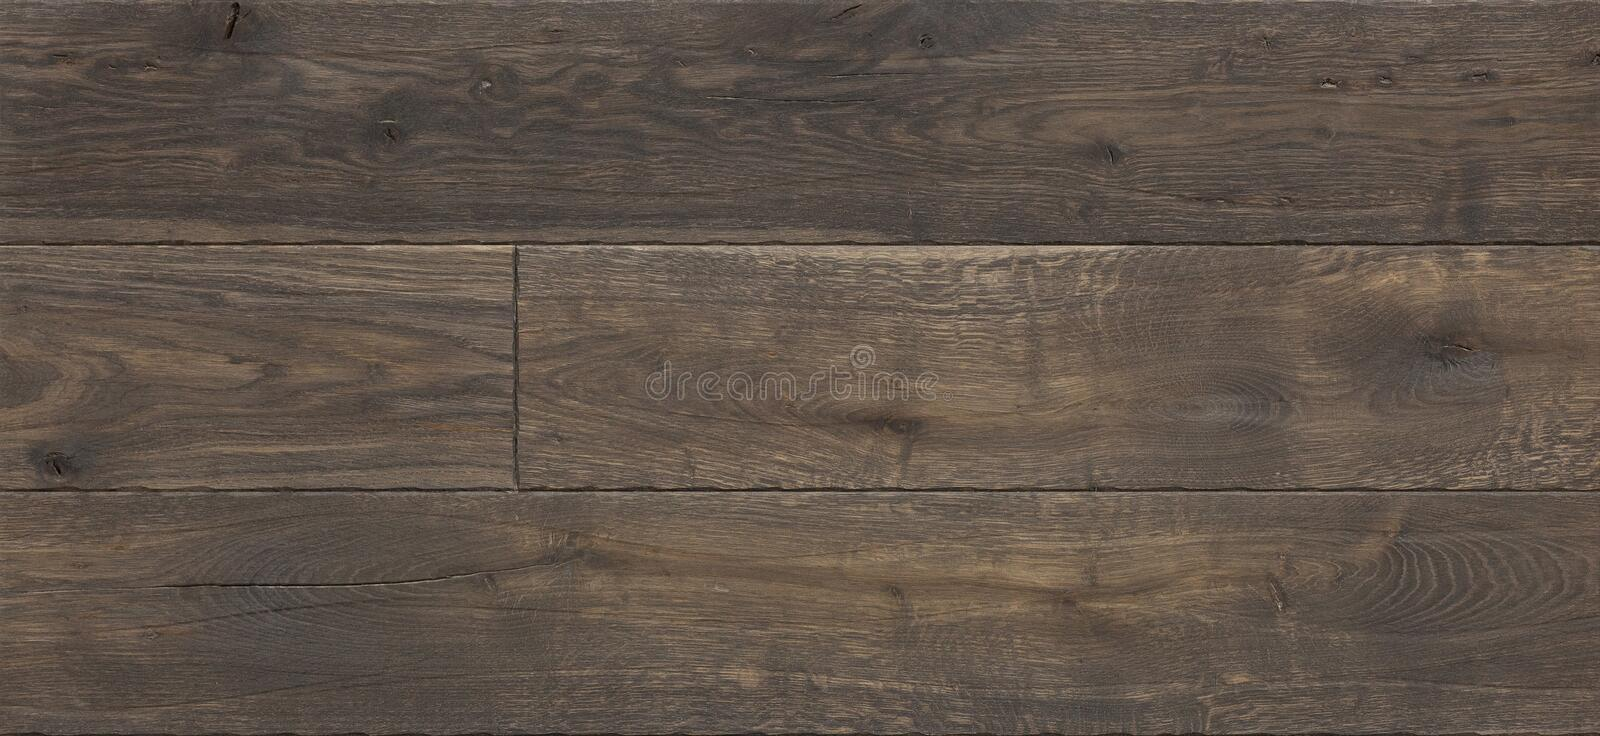 Natural wooden background, grunge parquet flooring design royalty free stock image